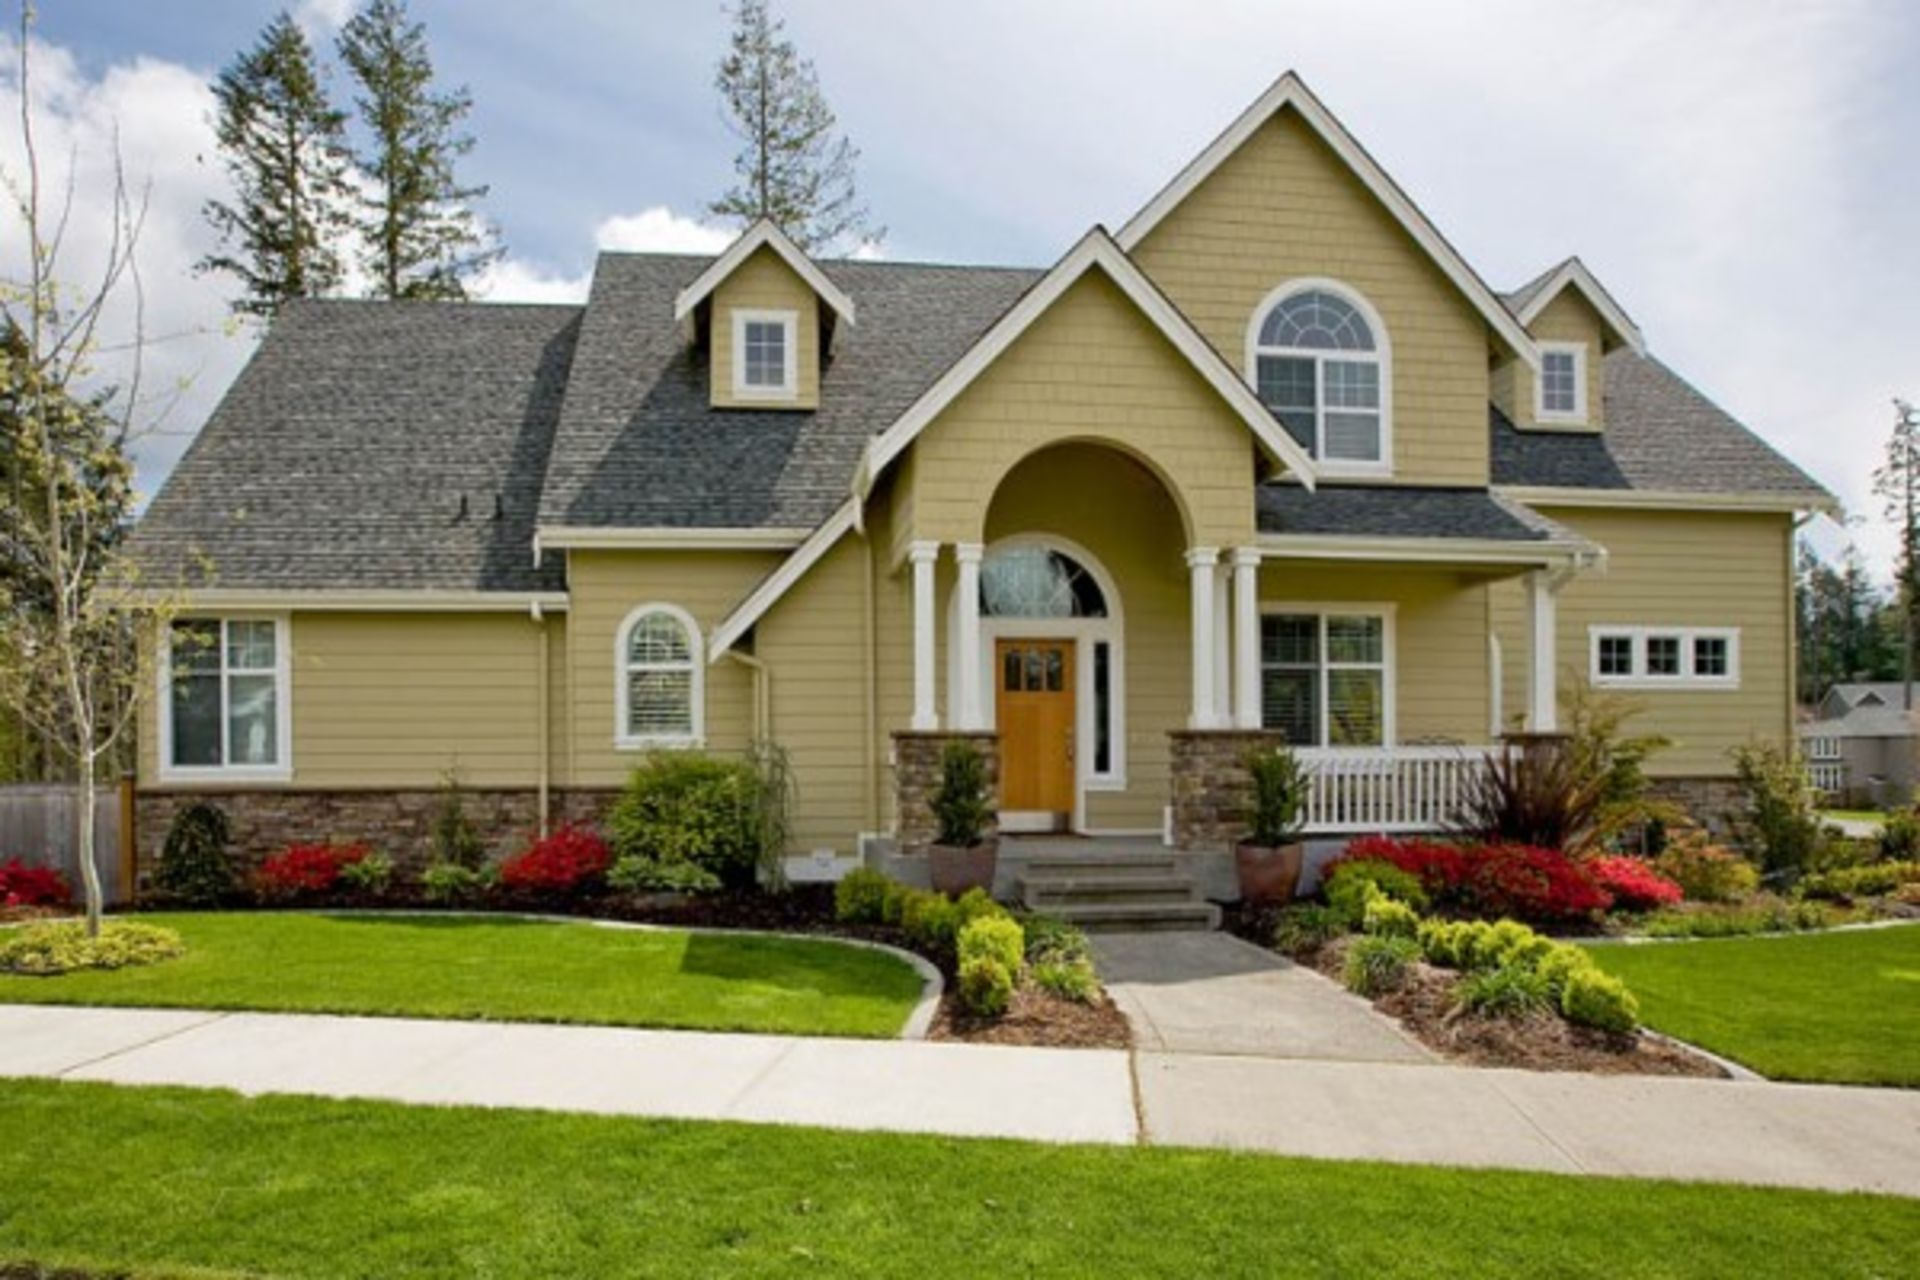 Curb Appeal: Prepping Your Home for a Quick Sale